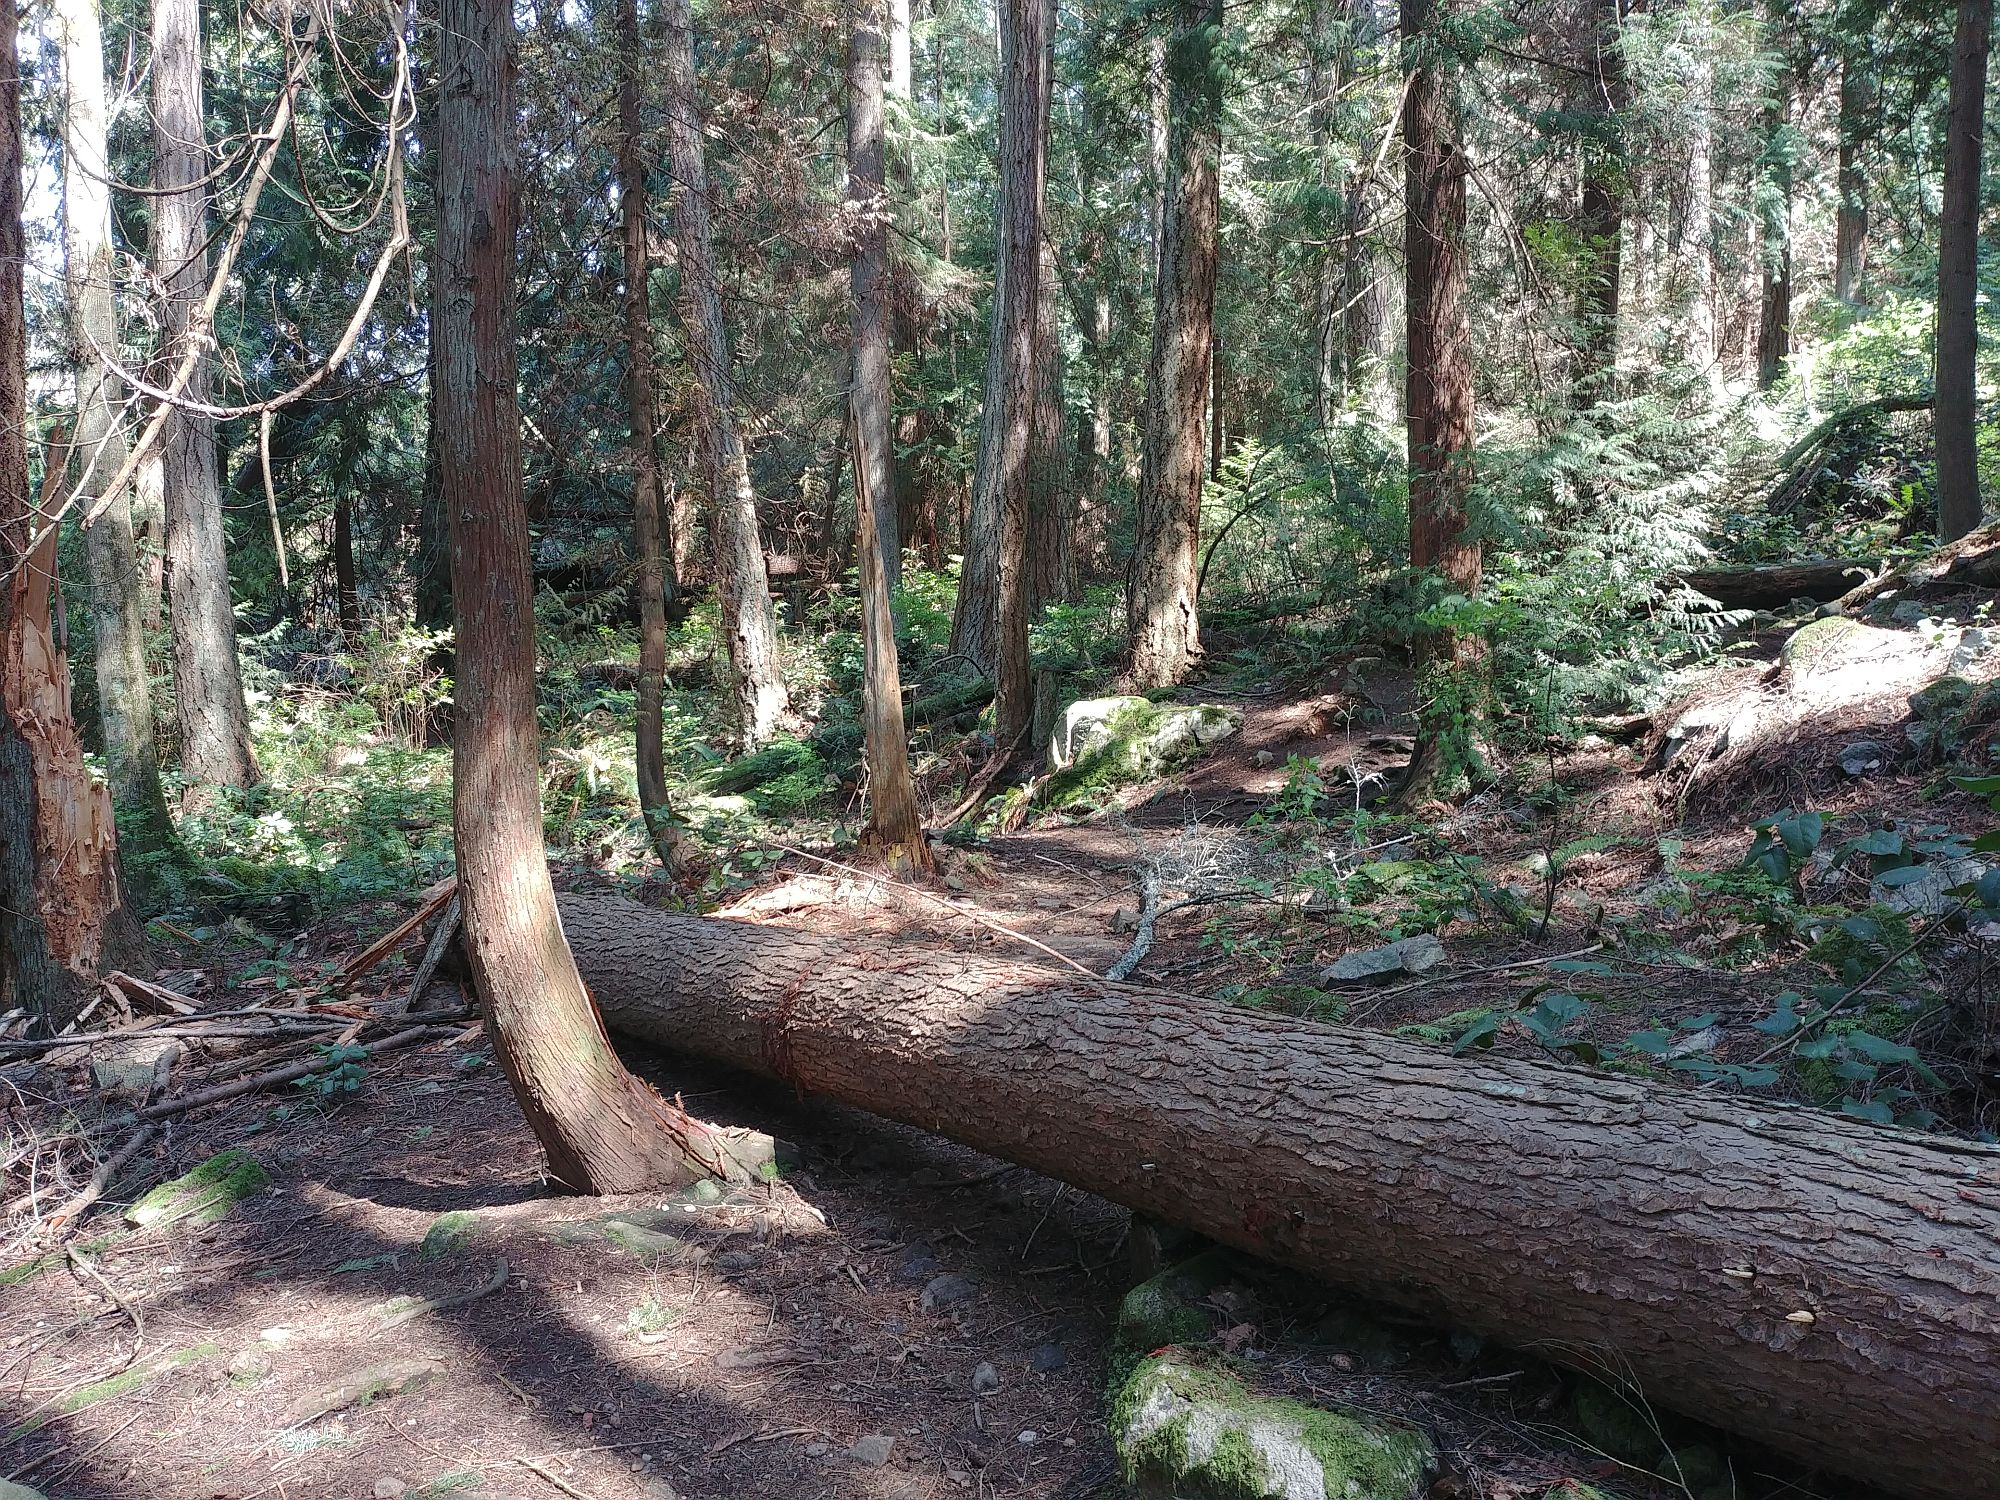 Lighthouse Park - 01 - Fallen tree across the trail